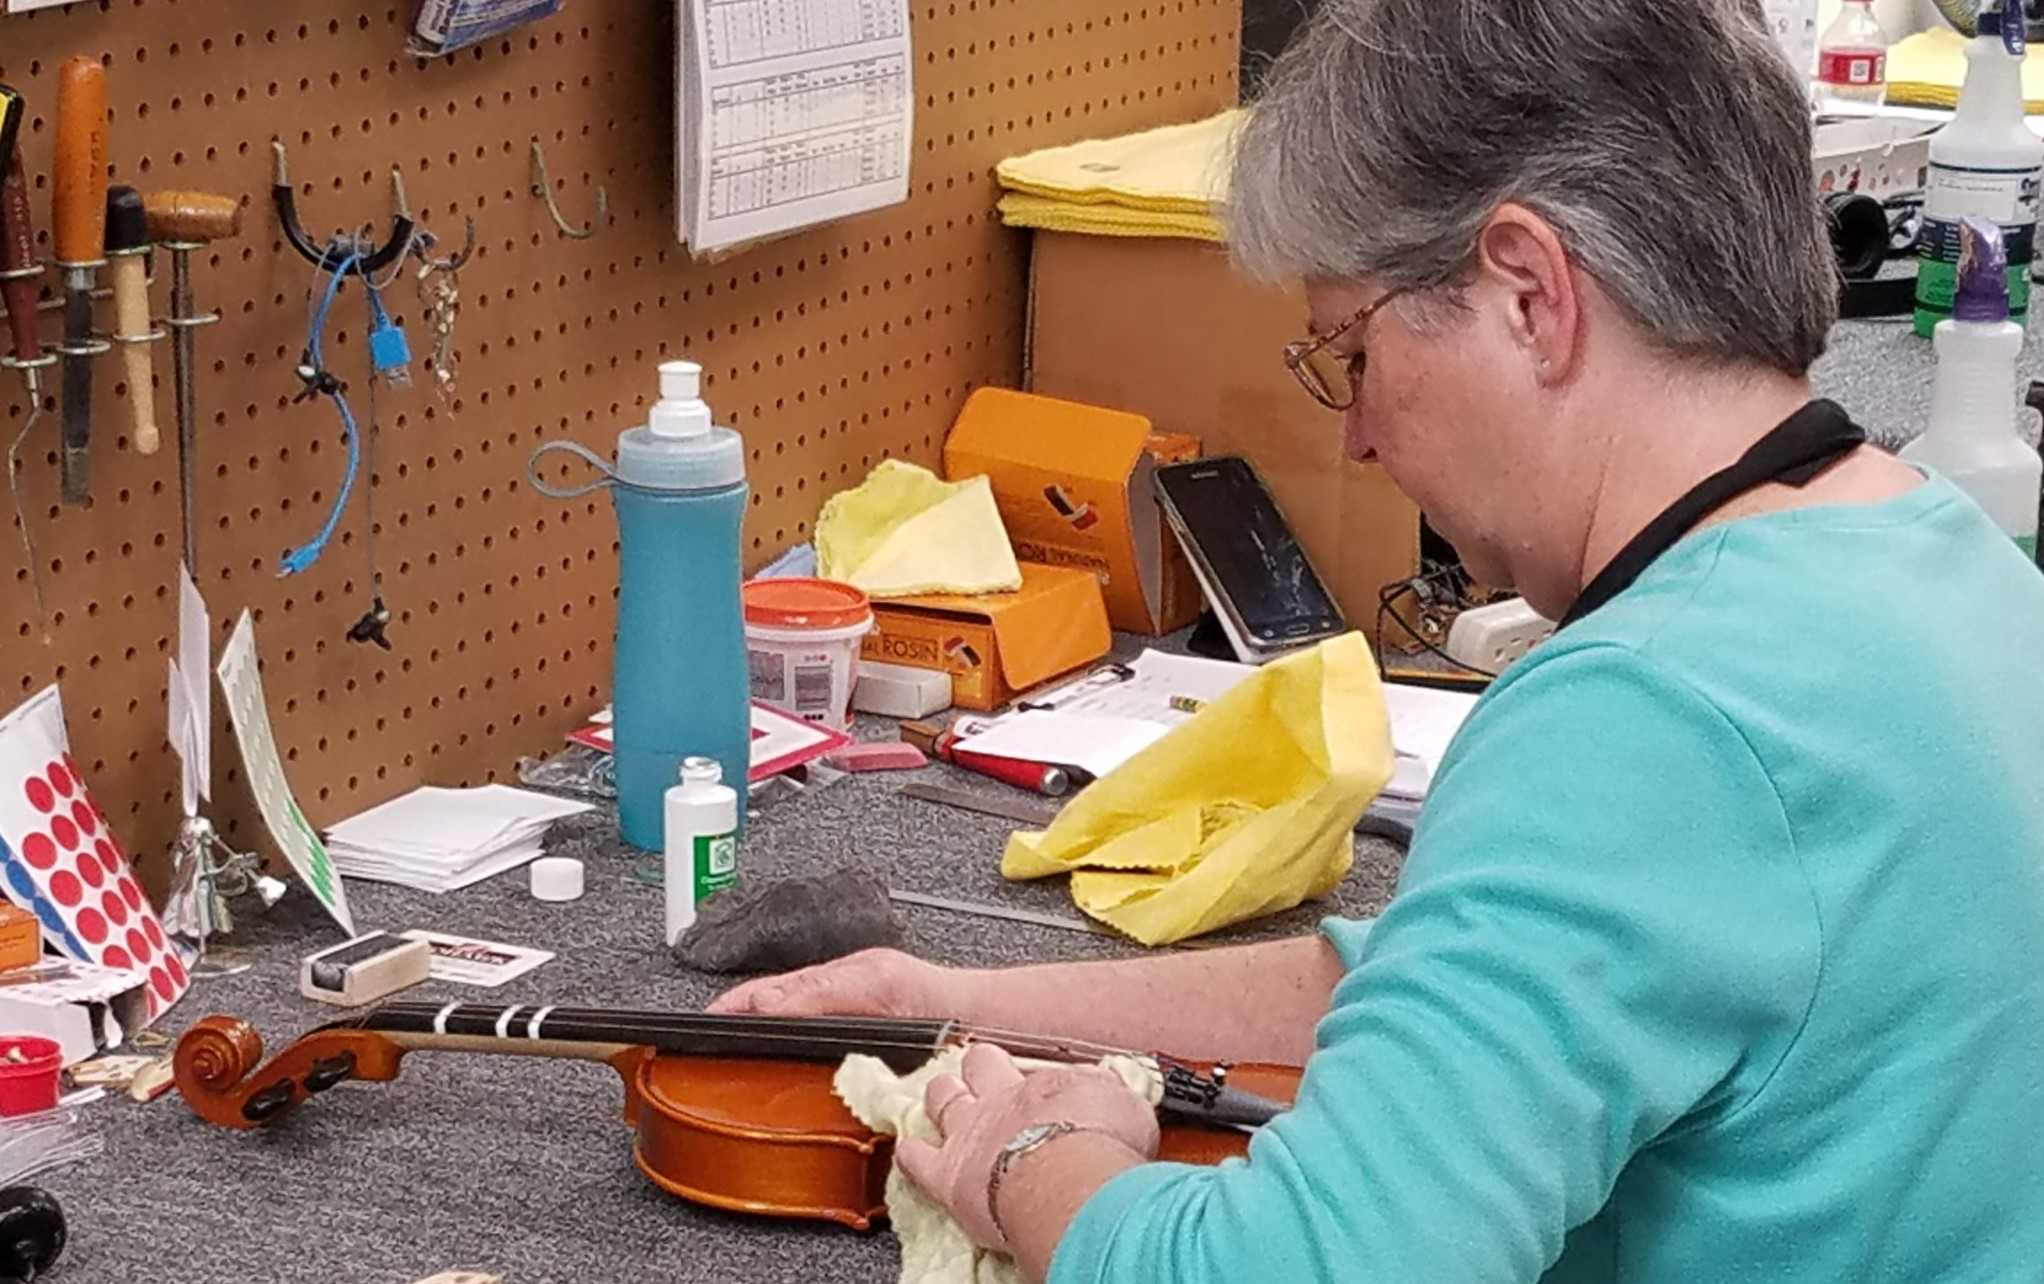 Woman cleaning violin and removing rosin after playing her instrument